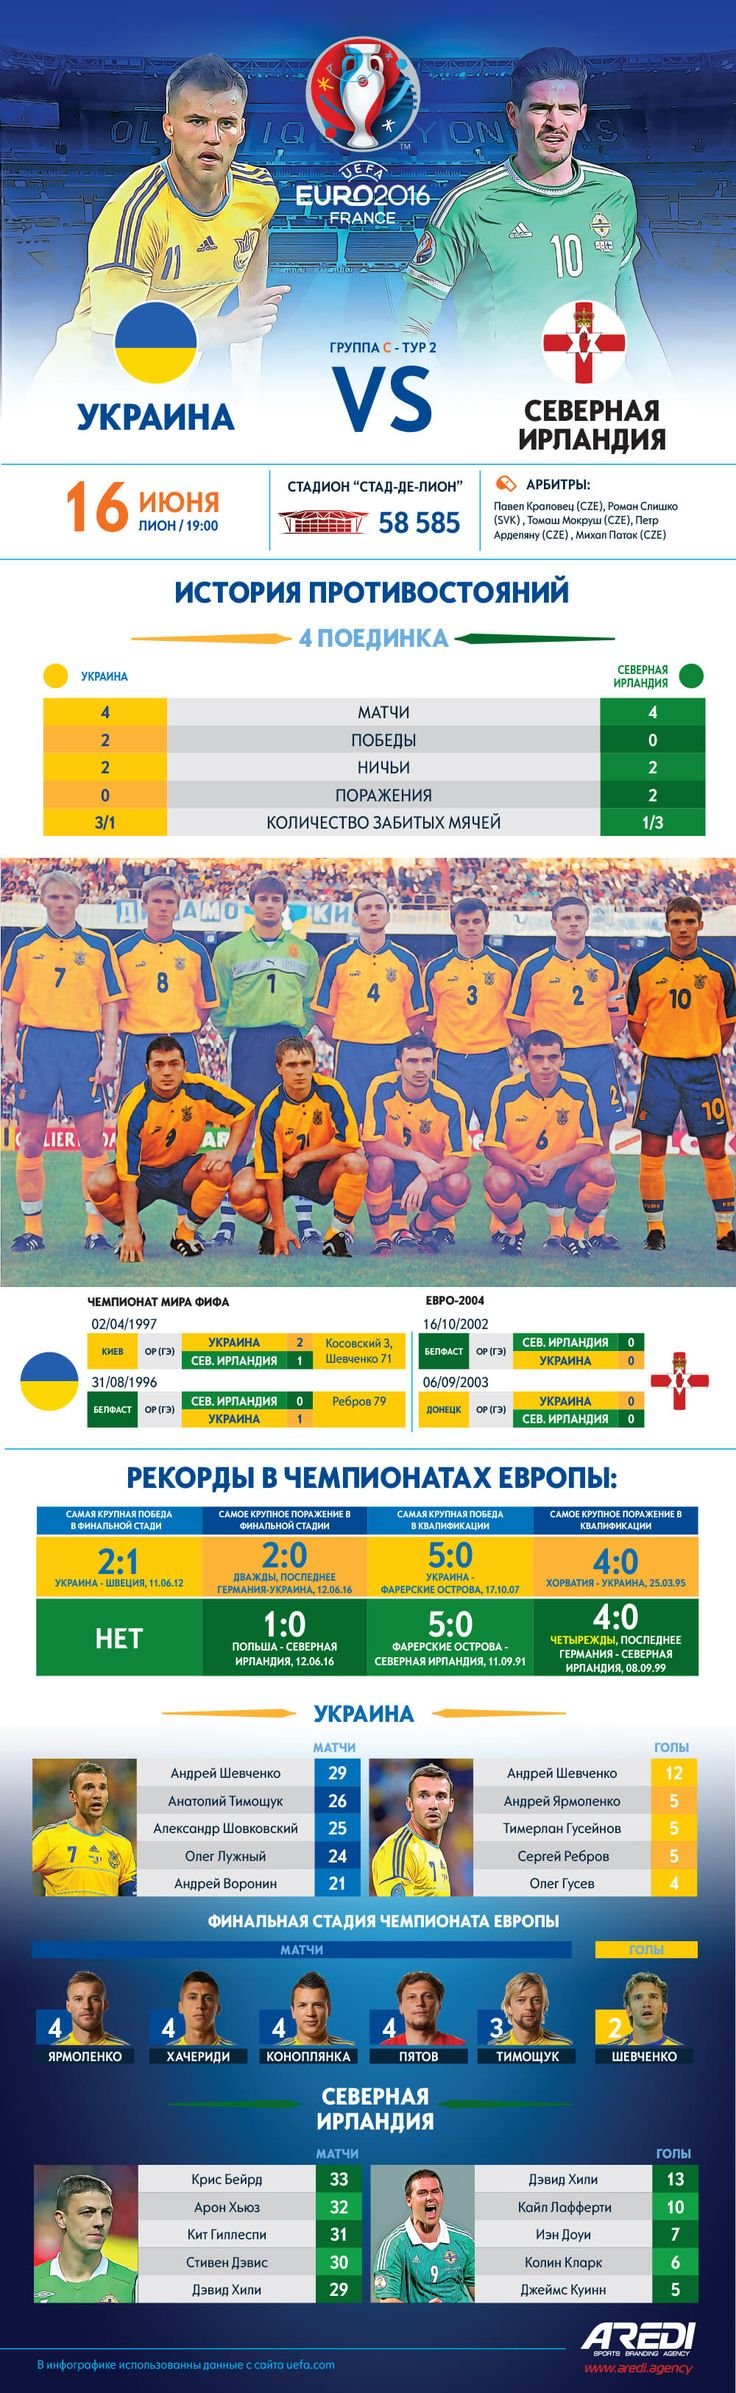 Инфографика, Украина - Северная Ирландия. Pre game, Euro-2016, art, infographic, Ukraine, Northern Ireland, soccer, football, UEFA, #sportaredi